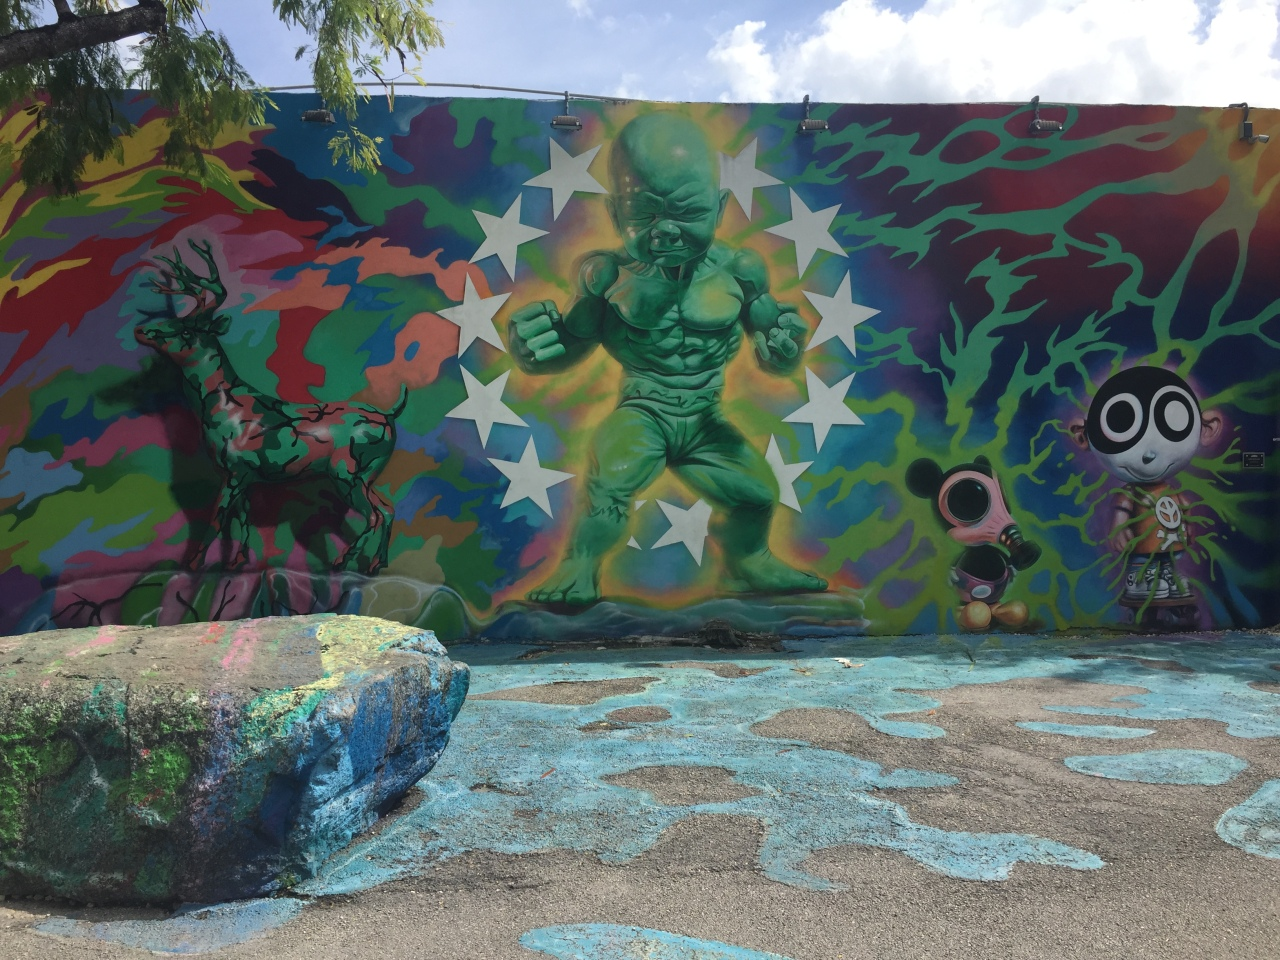 Wynwood Walls a visual delight for any budding artist